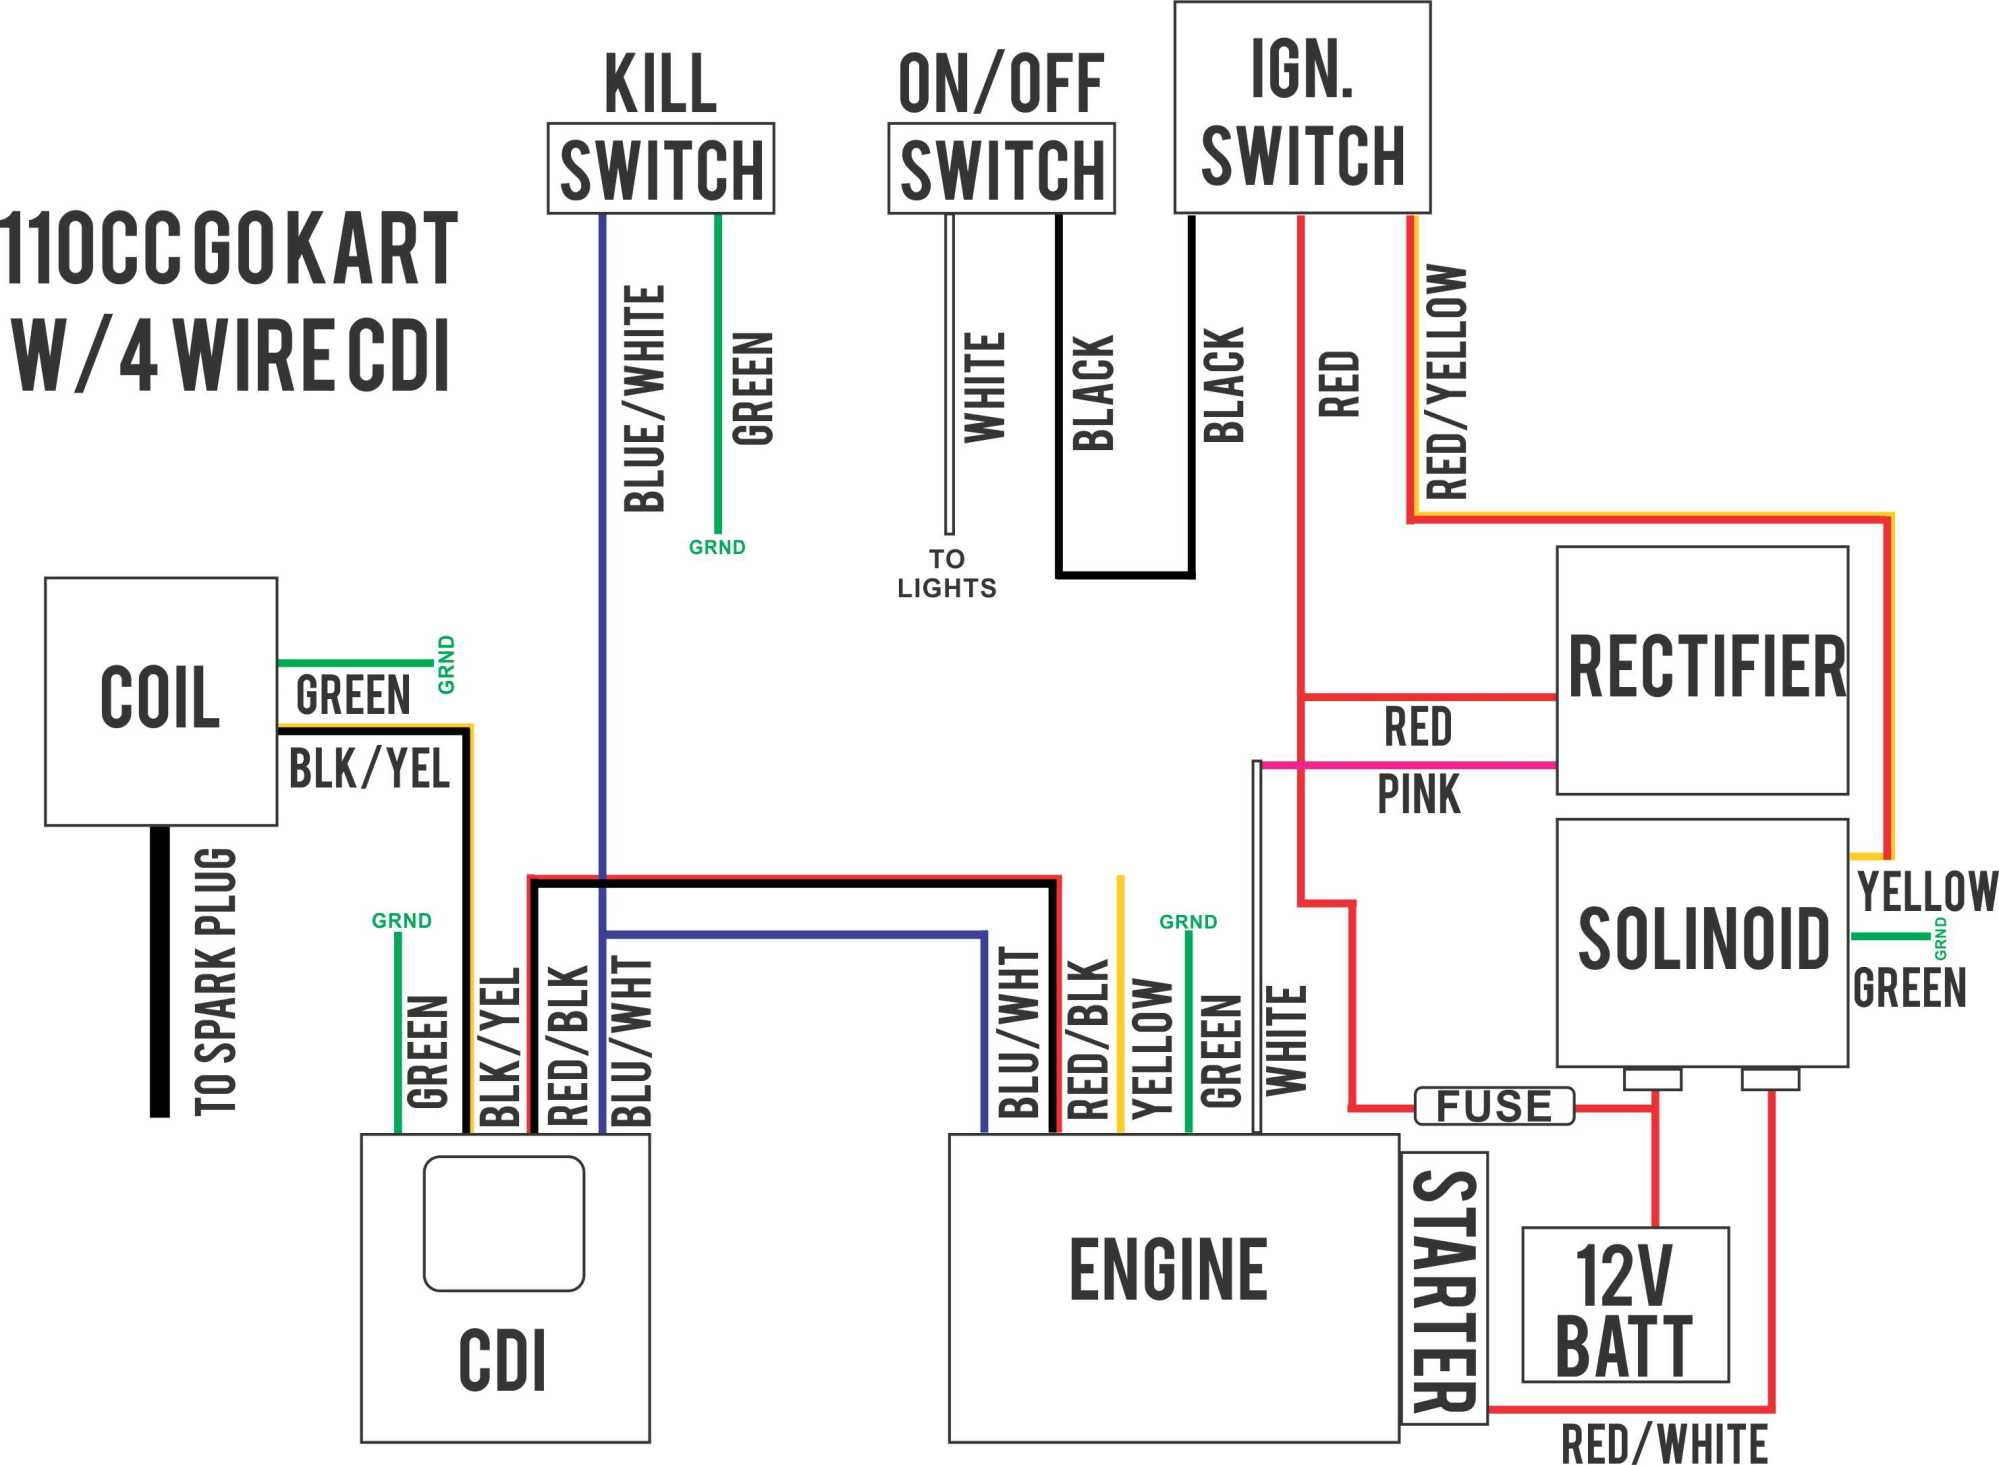 hight resolution of main power plug diagram free download wiring diagram schematic 5 wire switch wiring diagram free download